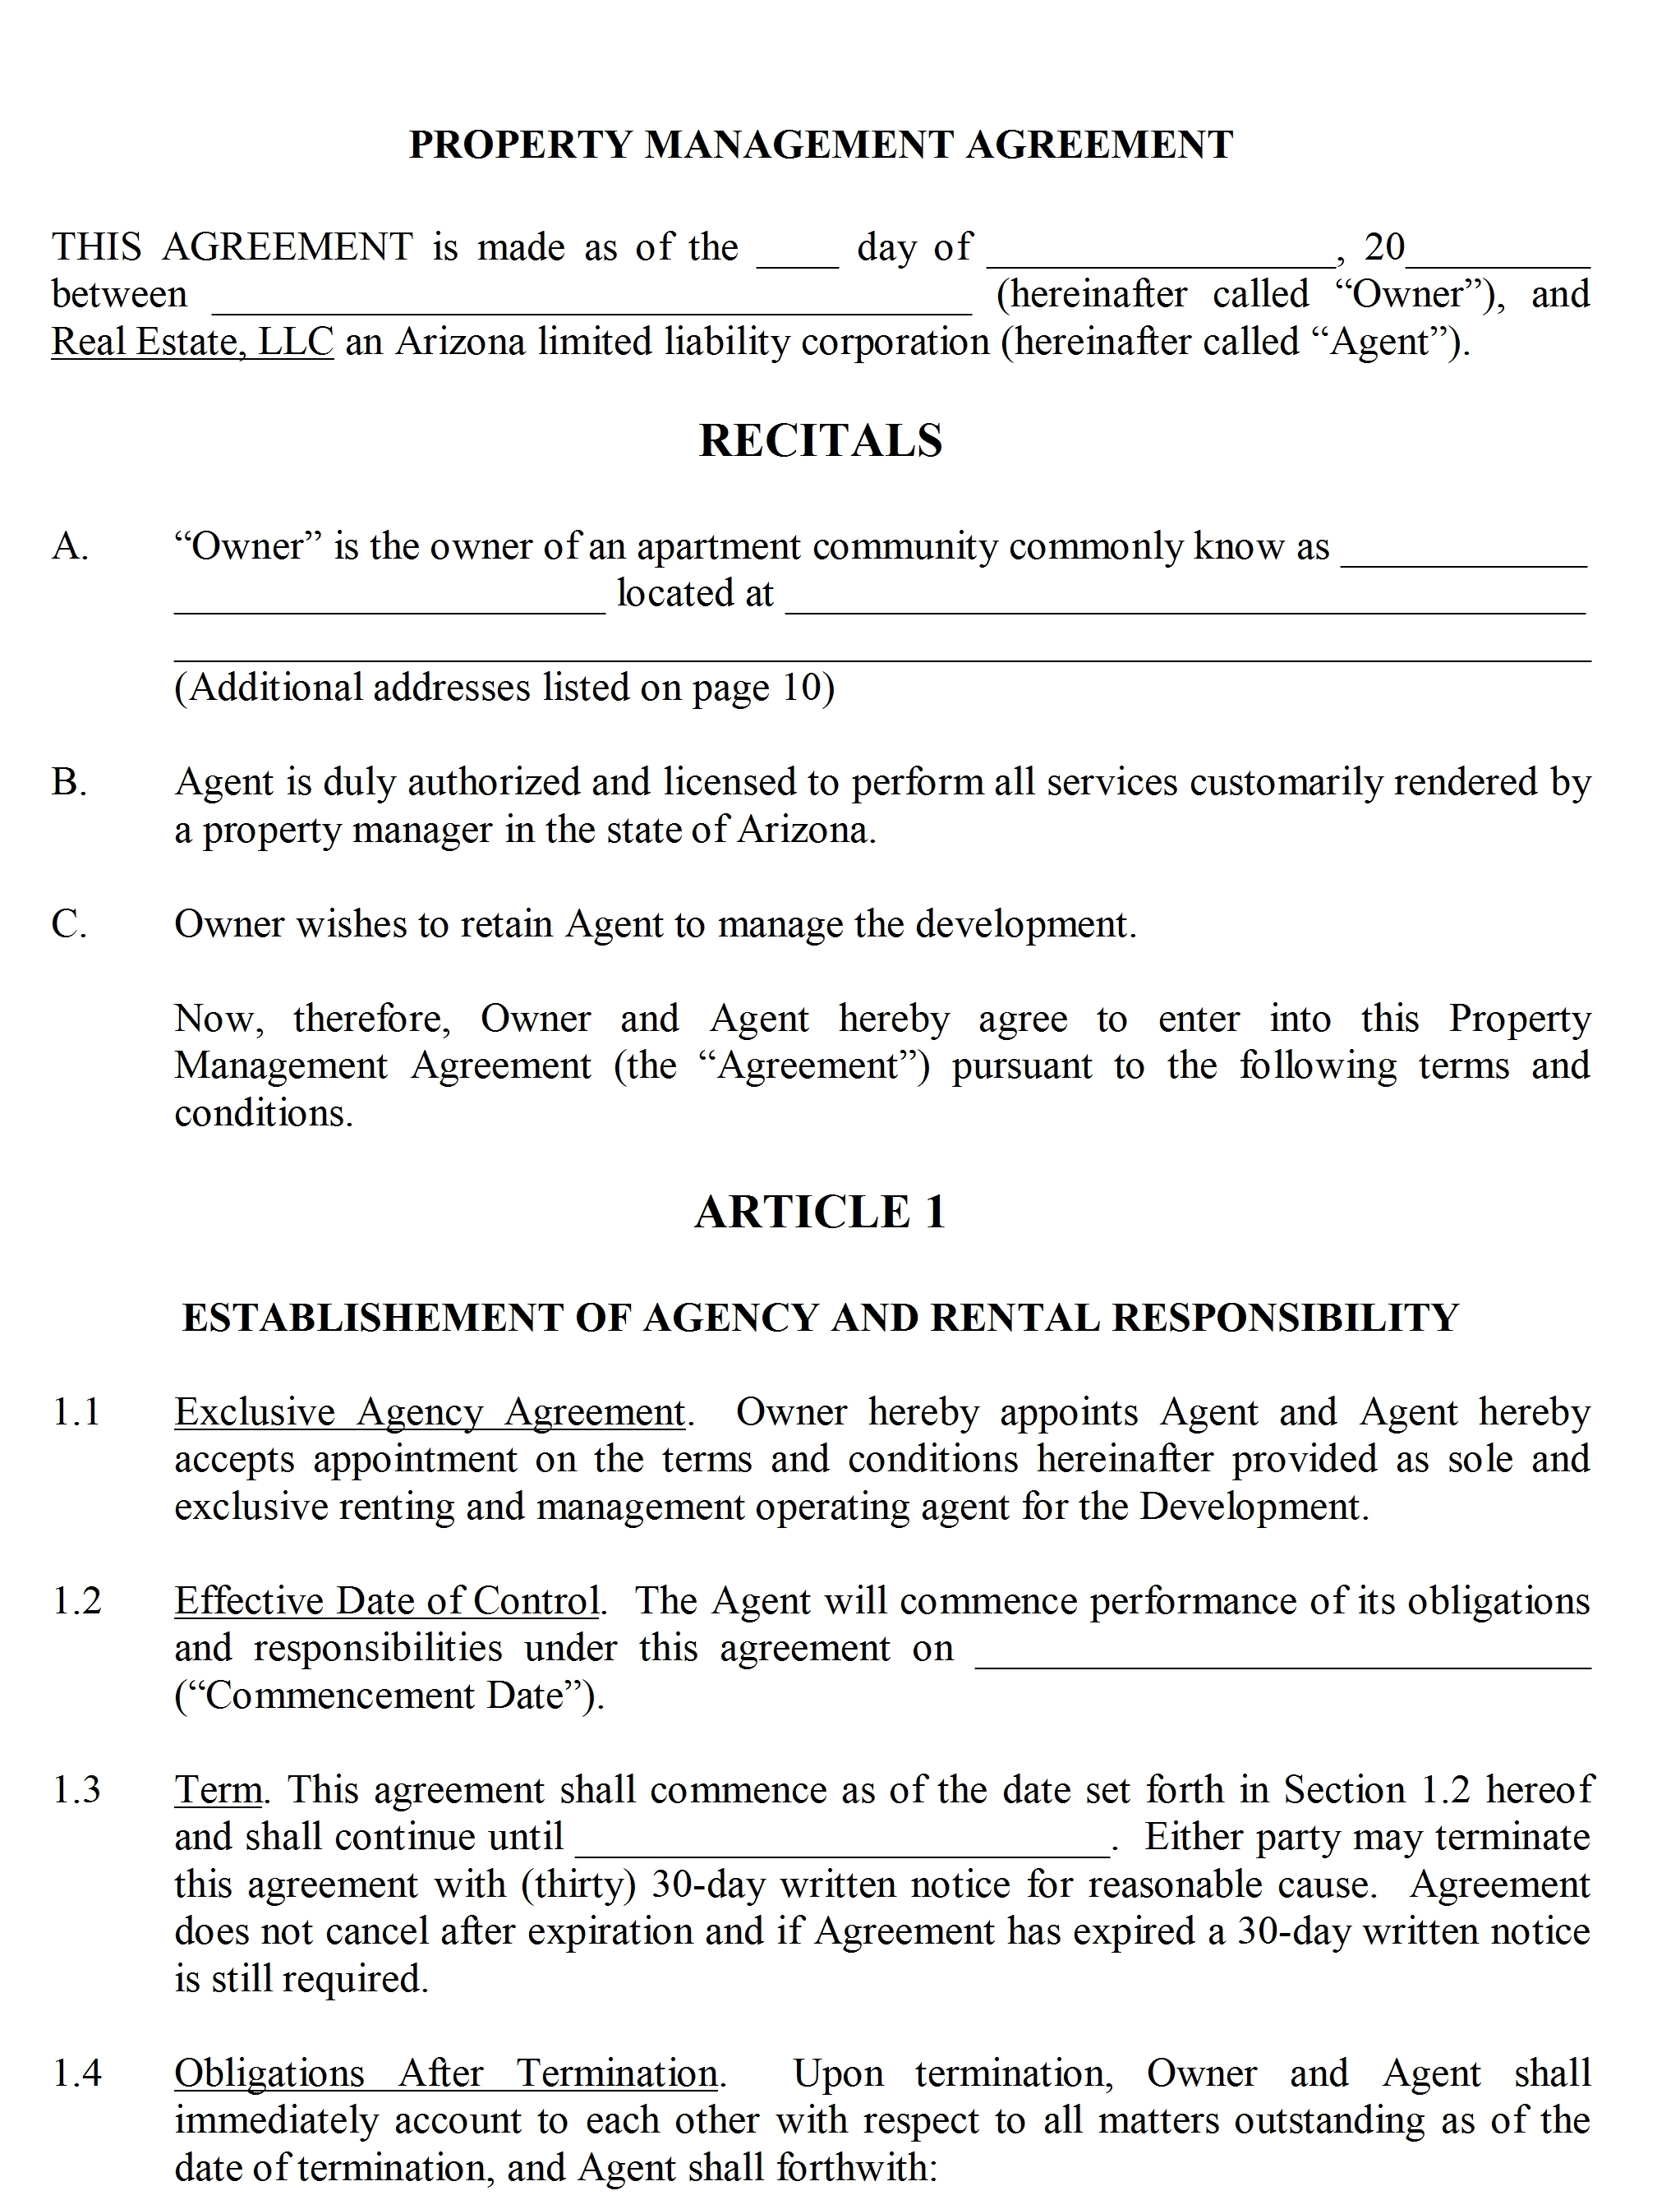 Separation Agreement Template – Property Agreement Template